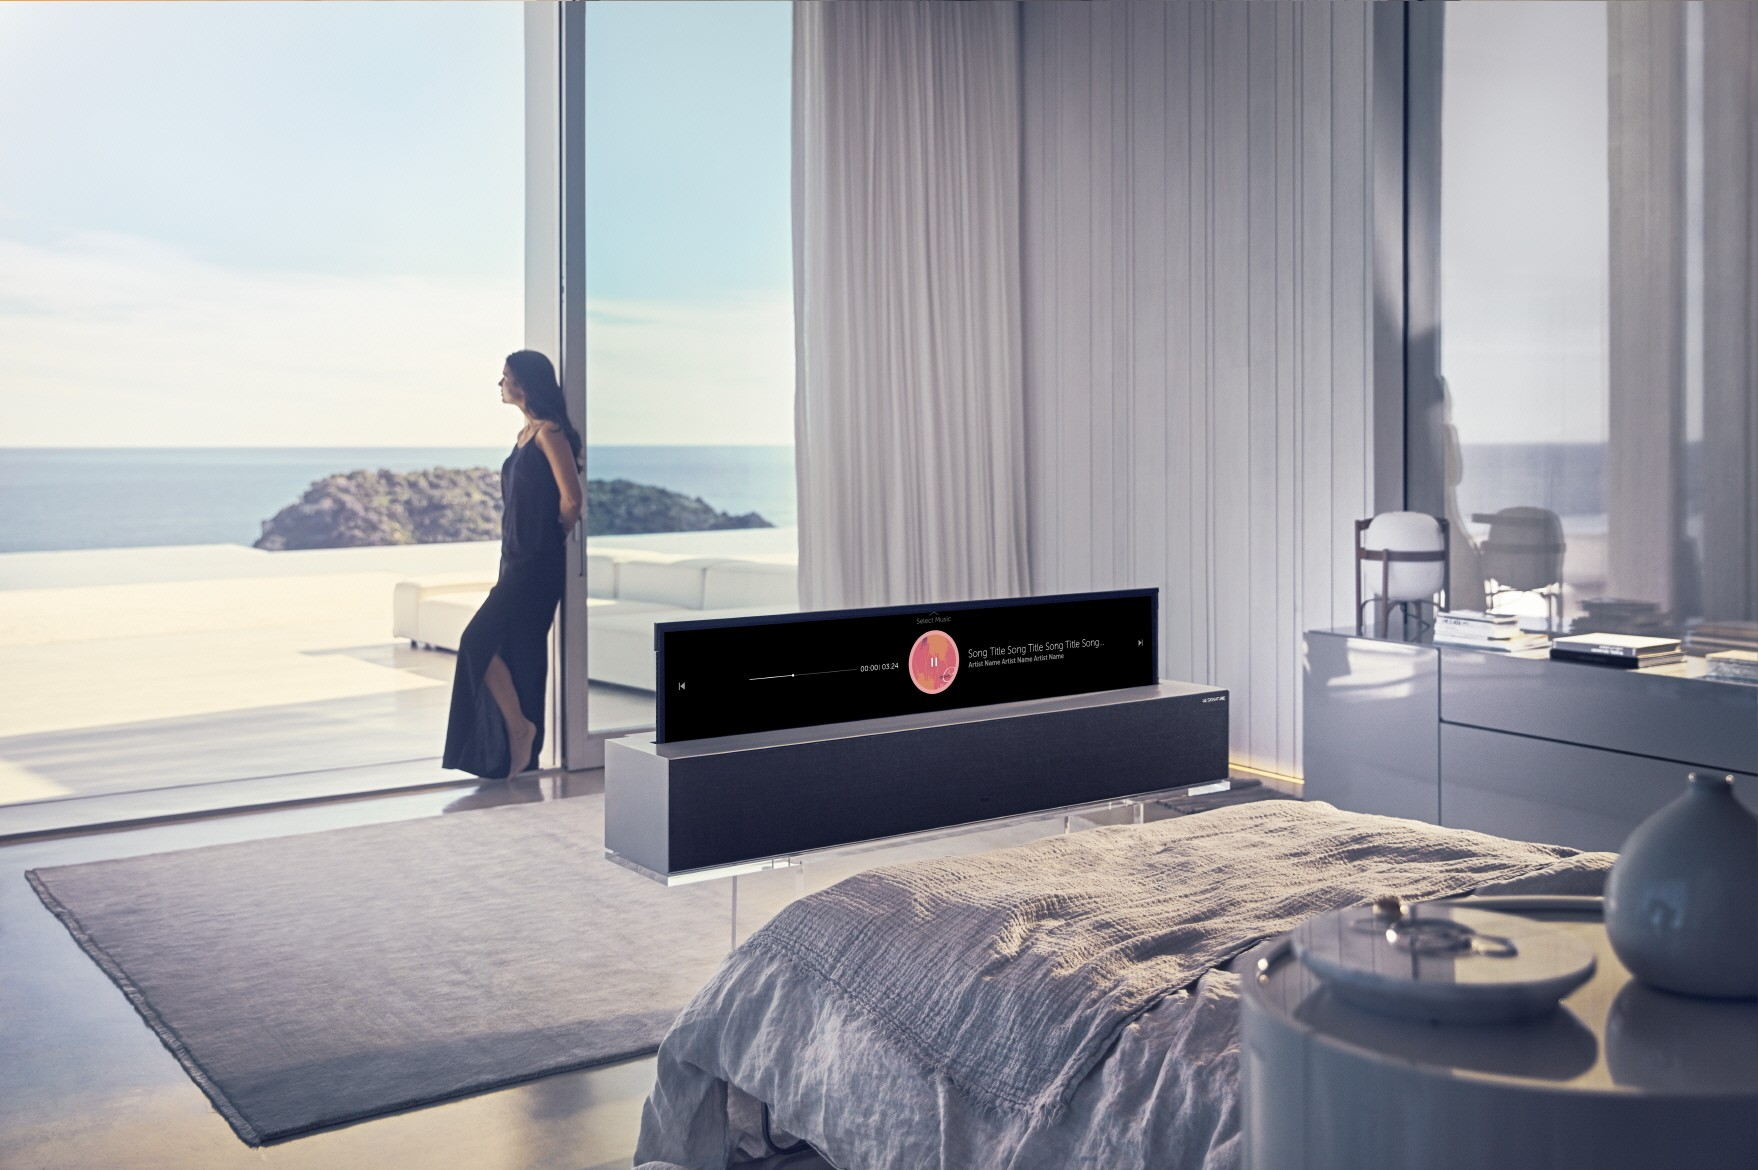 The rollable television will be on display at the CES technology show in Las Vegas